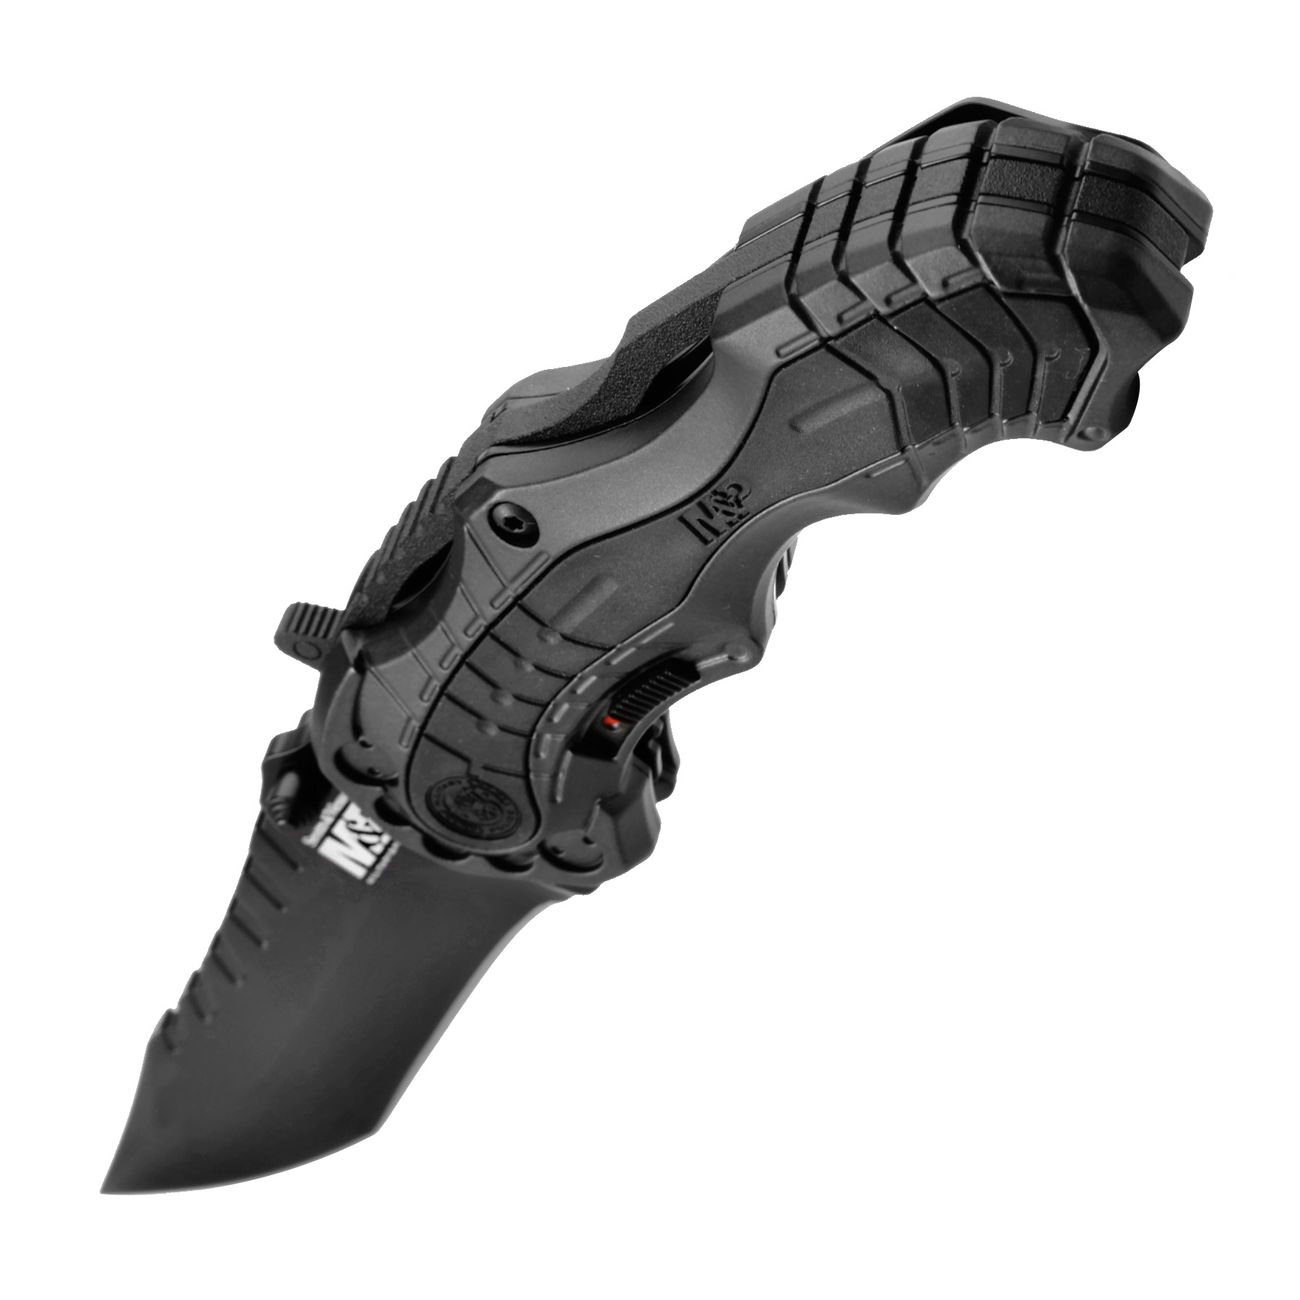 Smith & Wesson Einhandmesser MP6 grau/schwarz 2